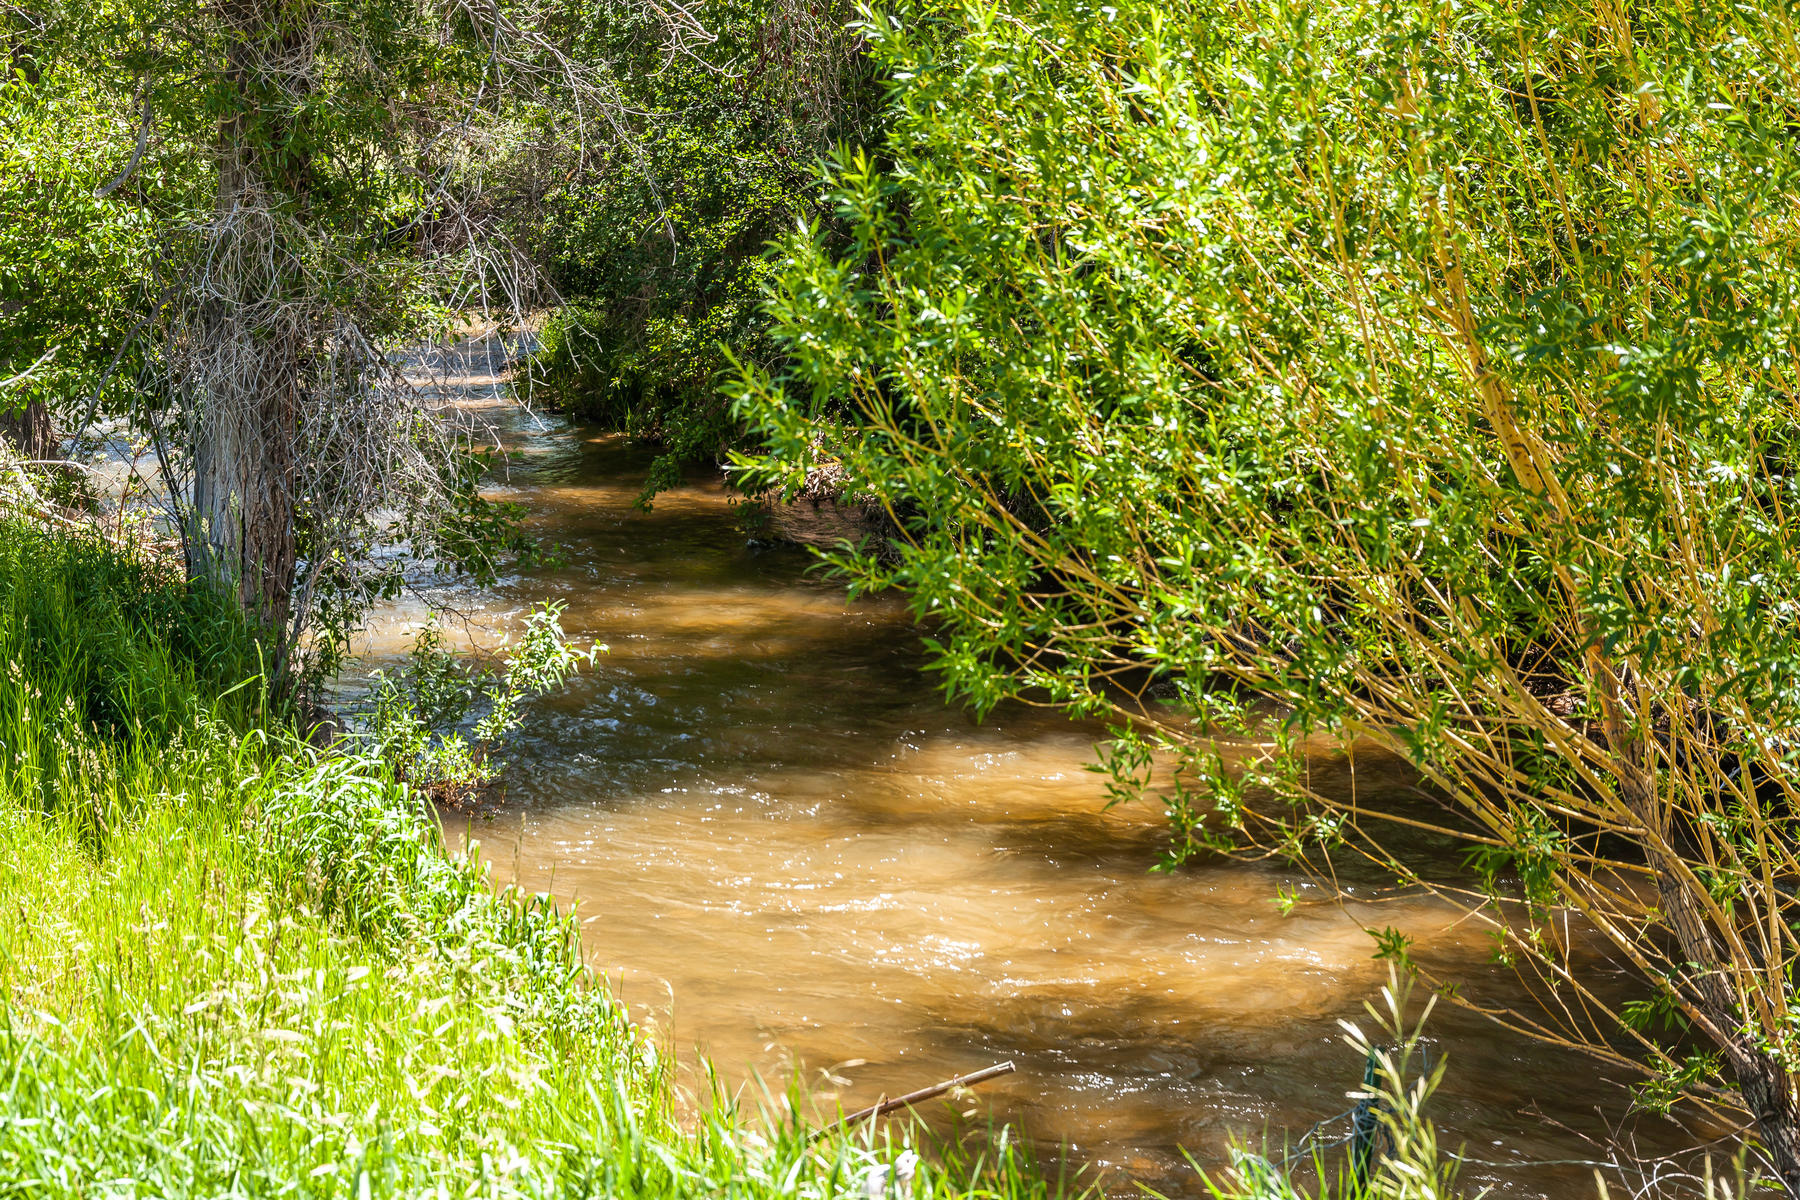 Land for Sale at 5.5 Acre Irrigated Buildable Lot Fronts Chalk Creek 614 E Chalk Creek Rd, Coalville, Utah 84017 United States